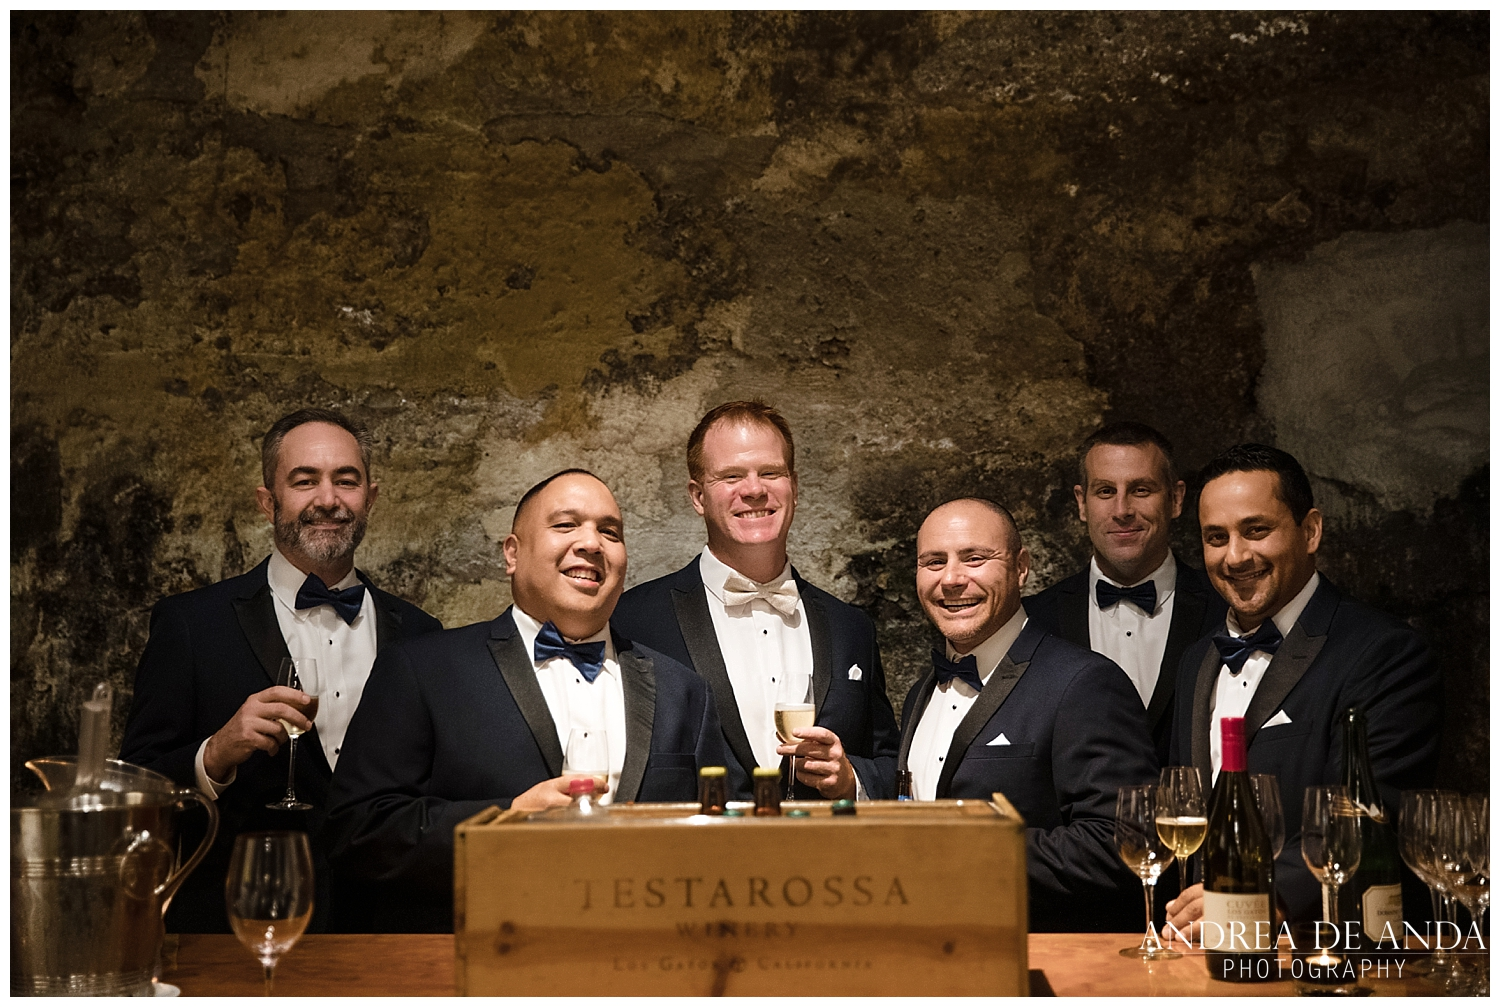 Testarossa Winery Winter Wedding by Andrea de Anda Photography_-5.jpg